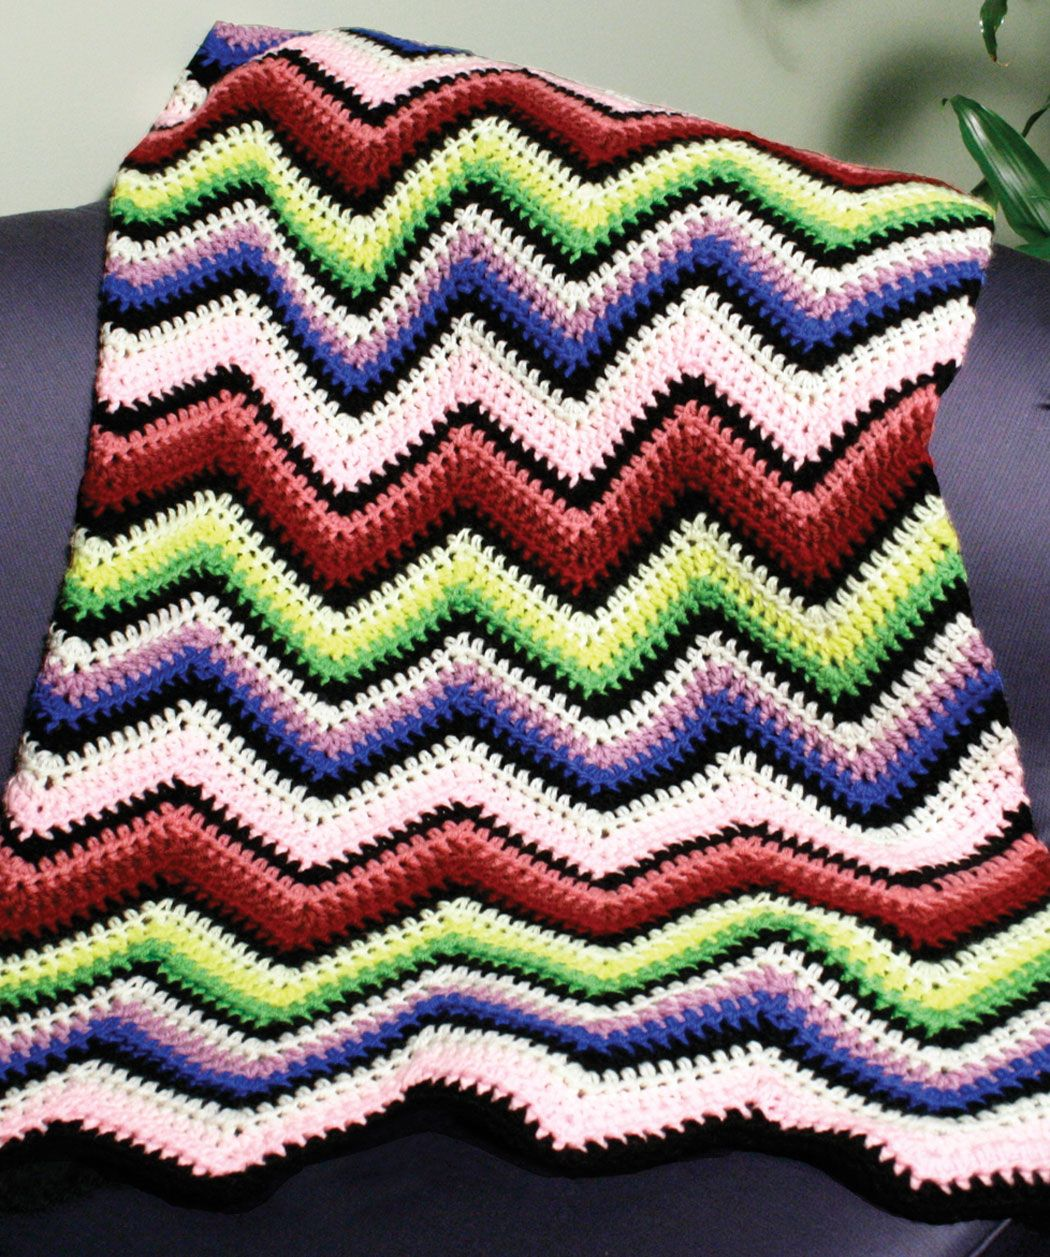 Crochet Rainbow Ripple Afghan. not my fave colors, but like the ...